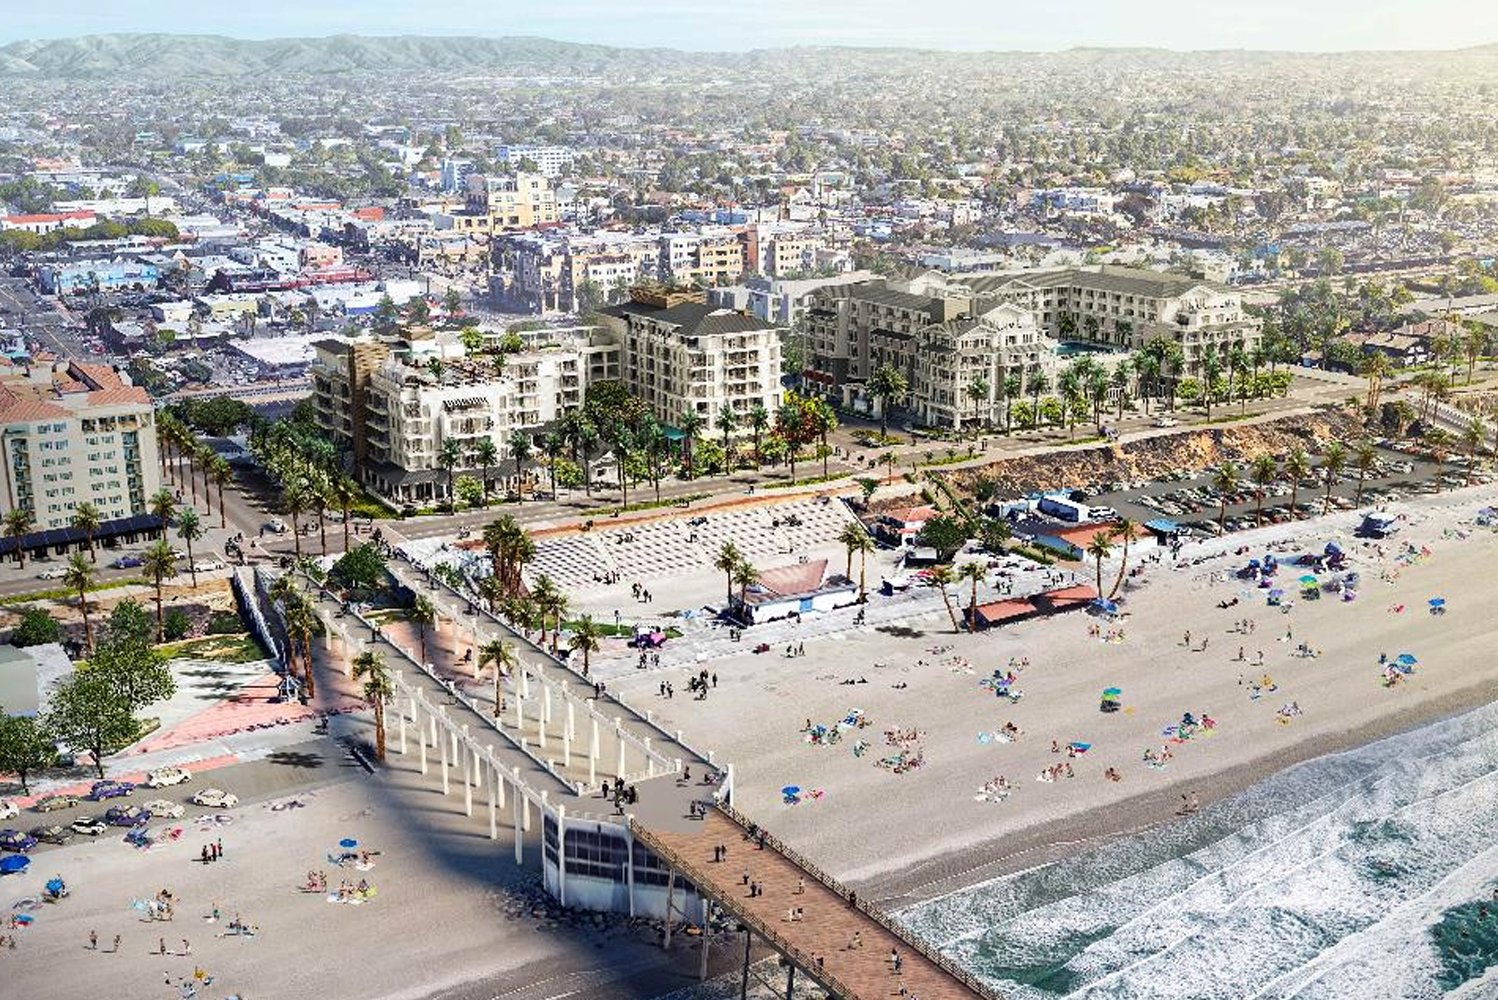 Two new beach resorts will open in Oceanside, California. One property will be a Joie de Vivre hotel; the second a Destination Hotels' resort.